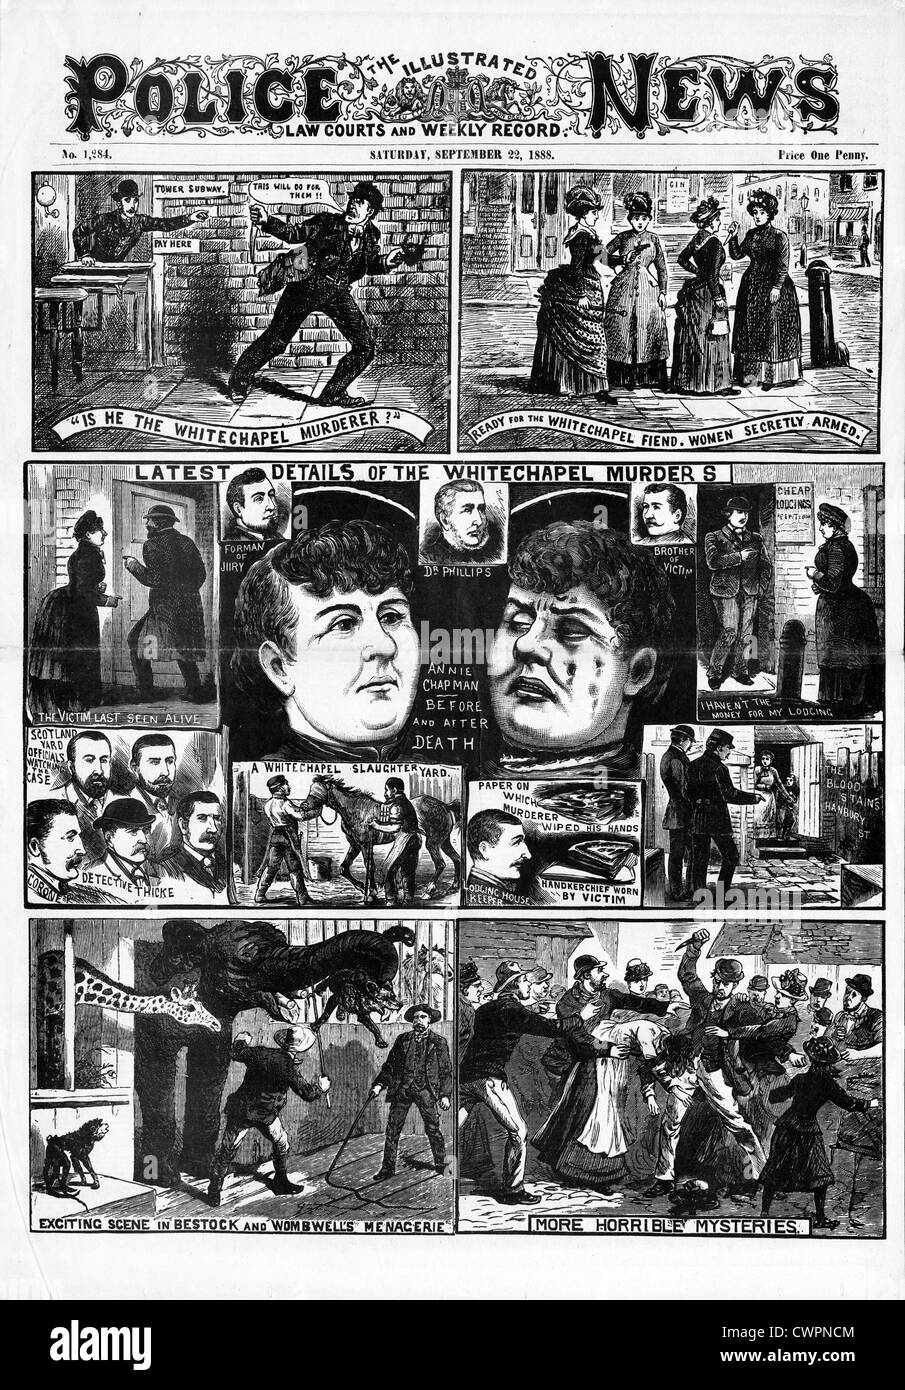 Jack The Ripper, Annie Chapman, The Police News front page reporting the second victim of the Victorian serial killer - Stock Image